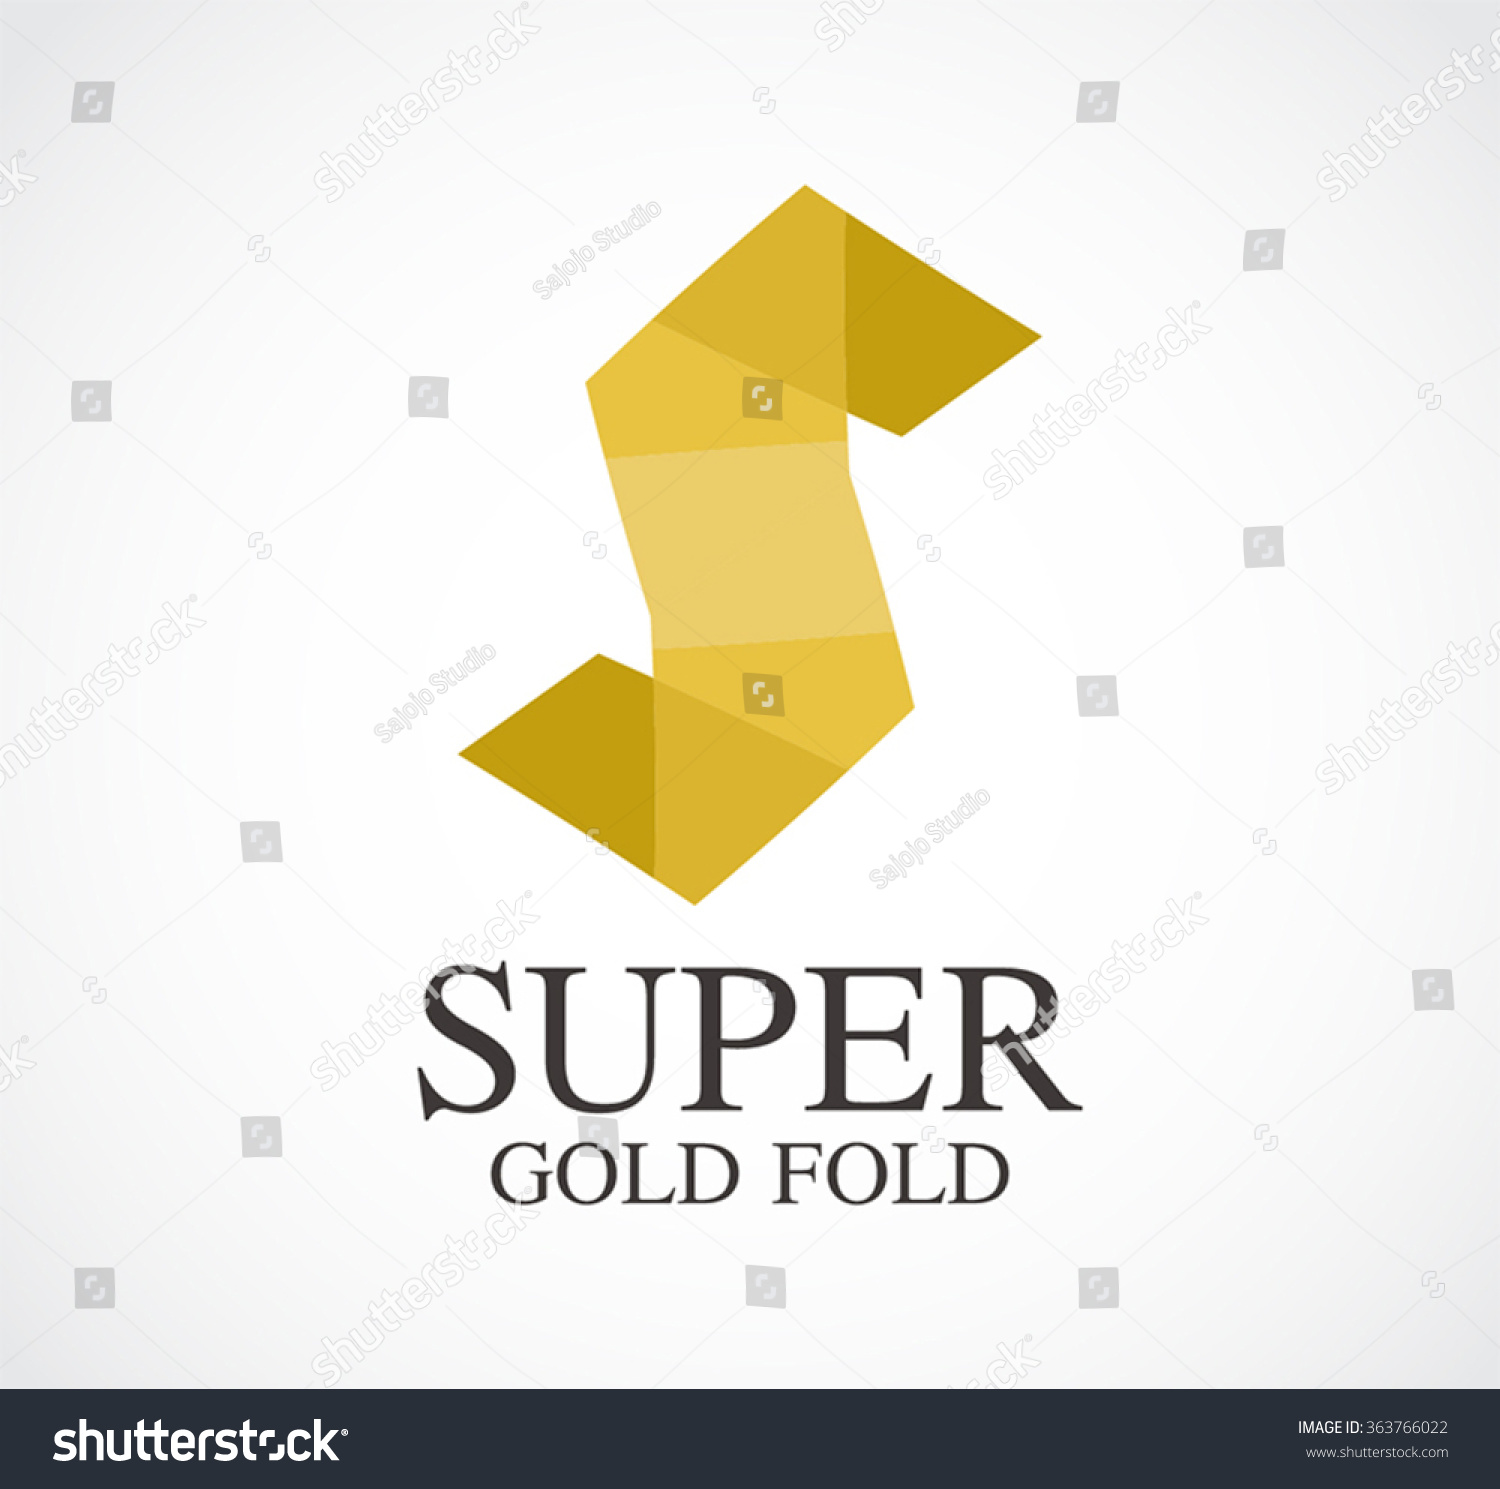 Gold Letter S Paper Fold Abstract Stock Vector